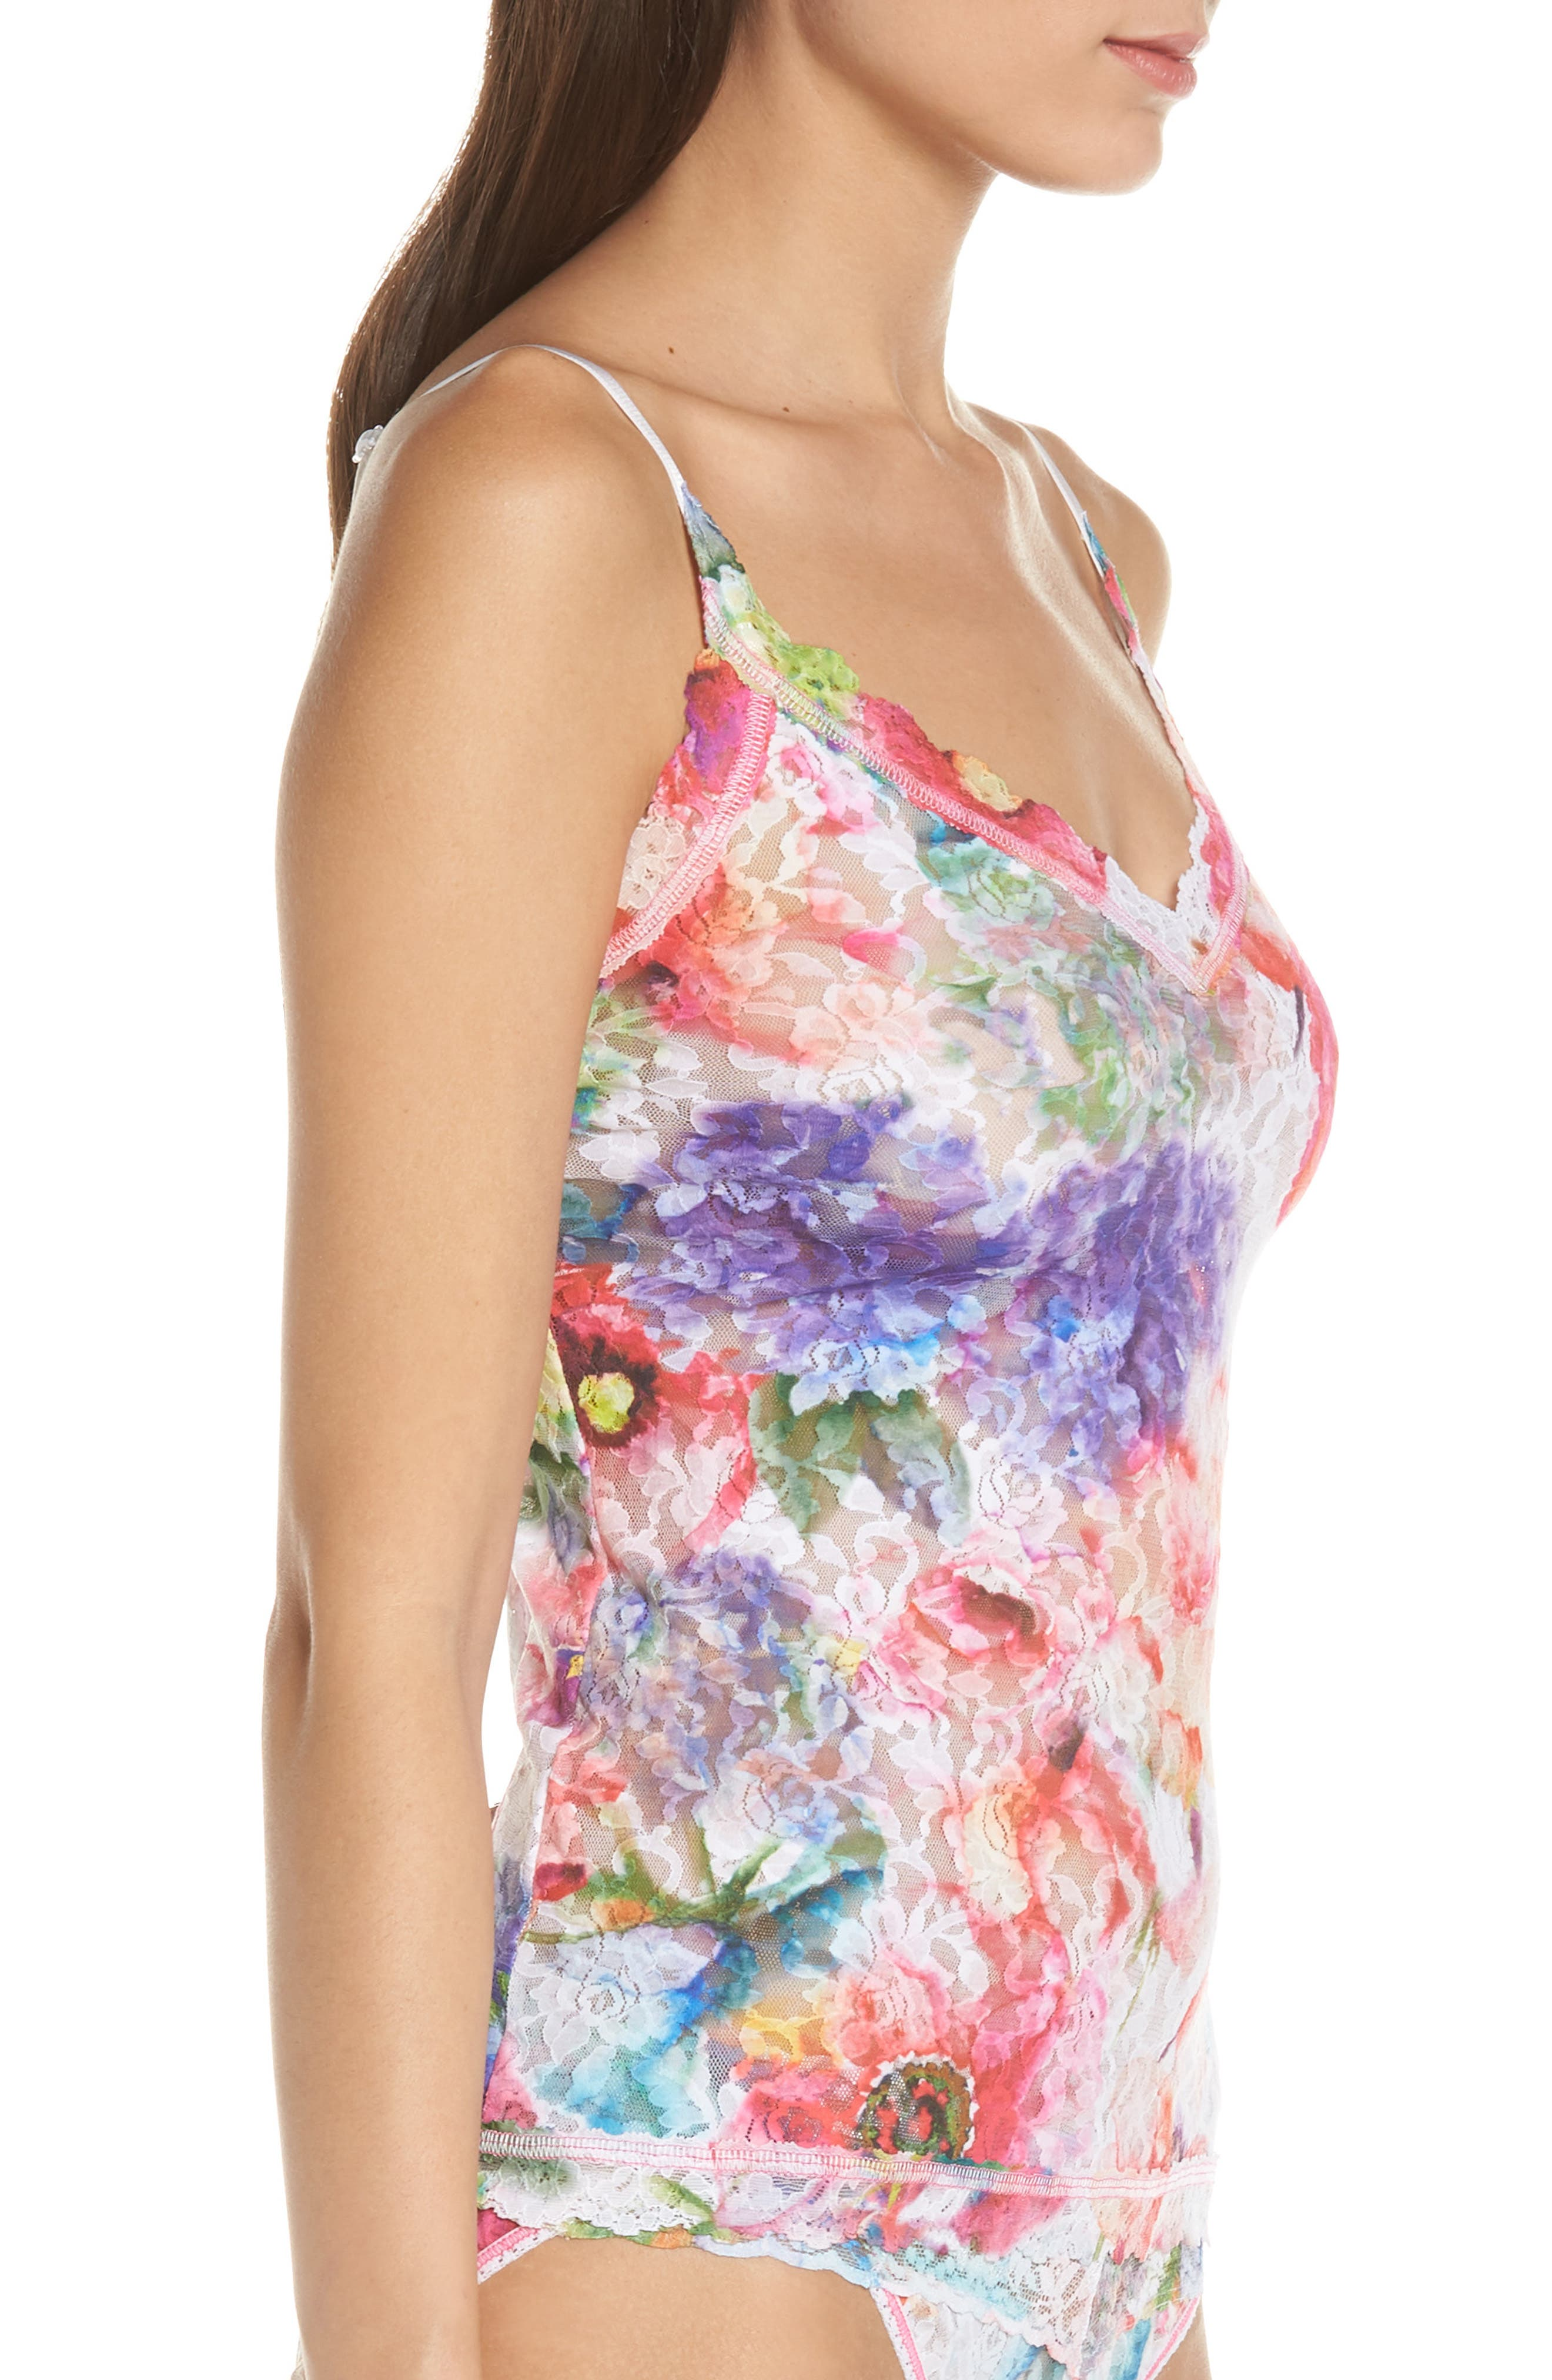 Impressionista Camisole,                             Alternate thumbnail 3, color,                             WHITE/ MULTI